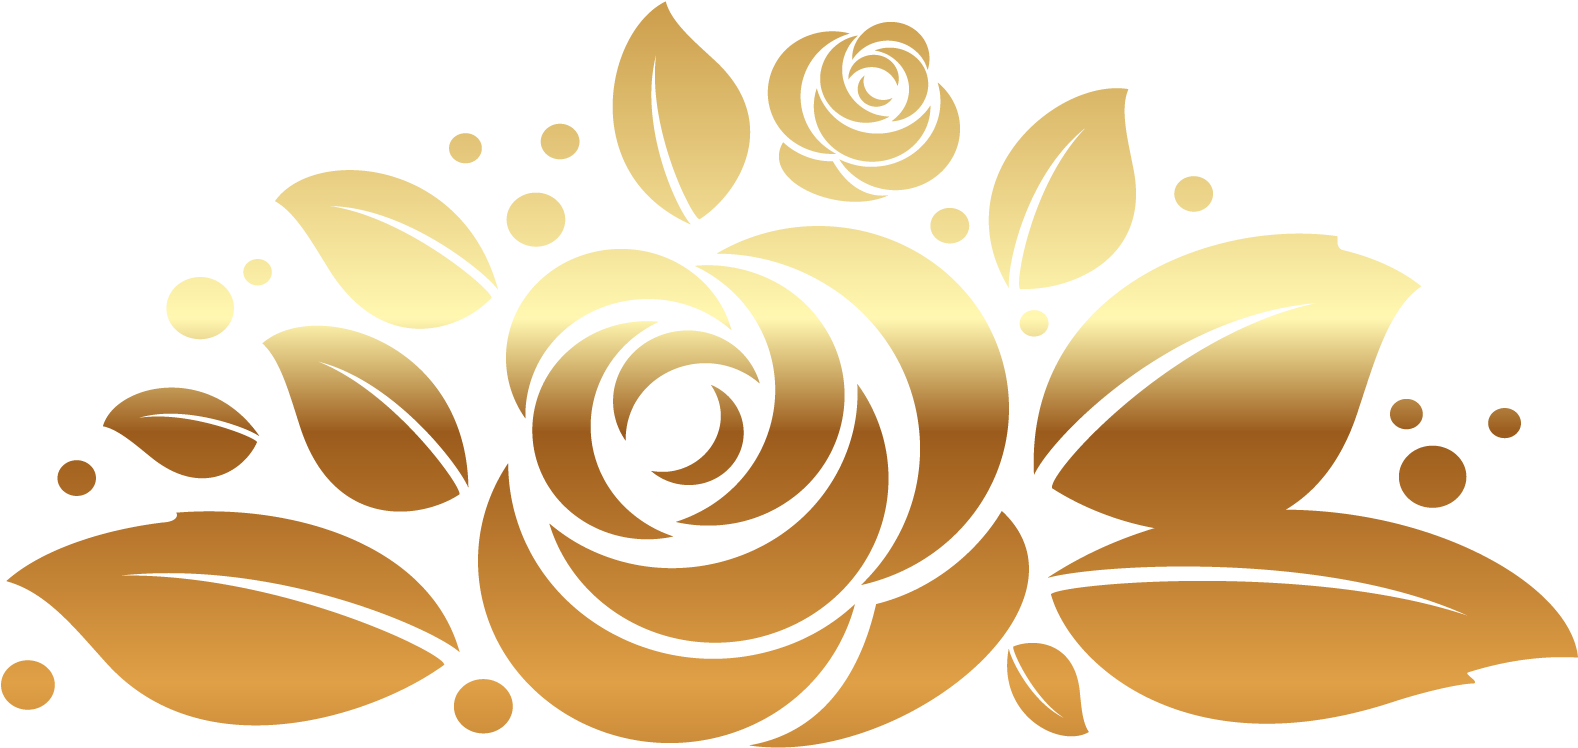 Rose gold flower png. Download image freeuse decor